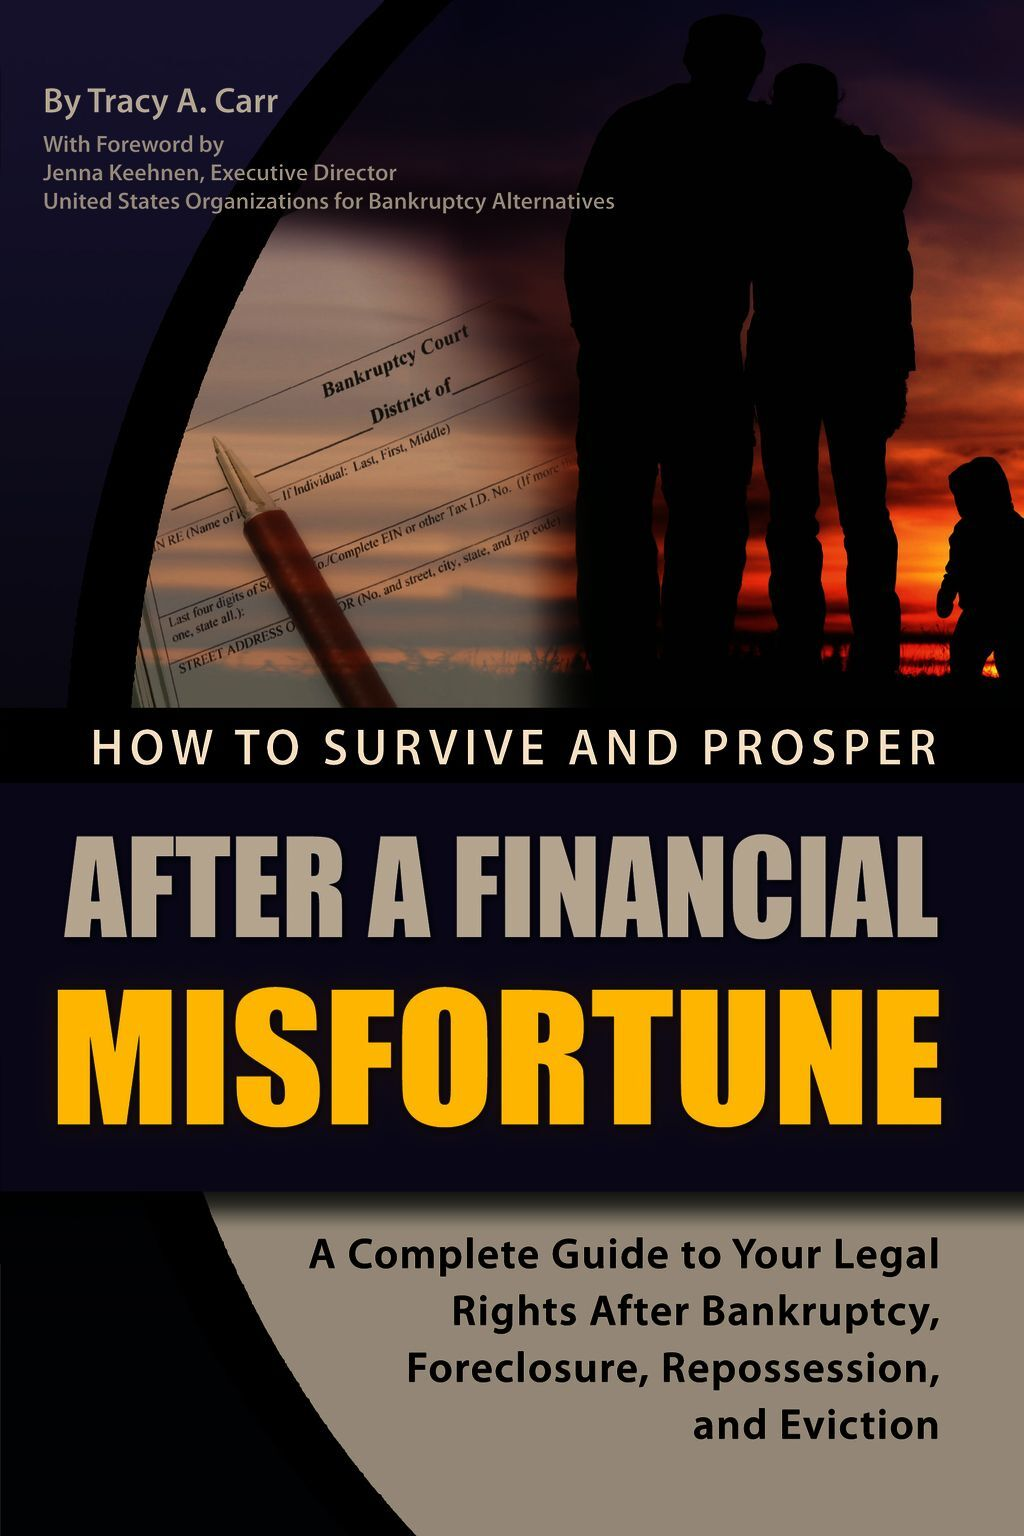 How To Survive And Prosper After A Financial Misfortune